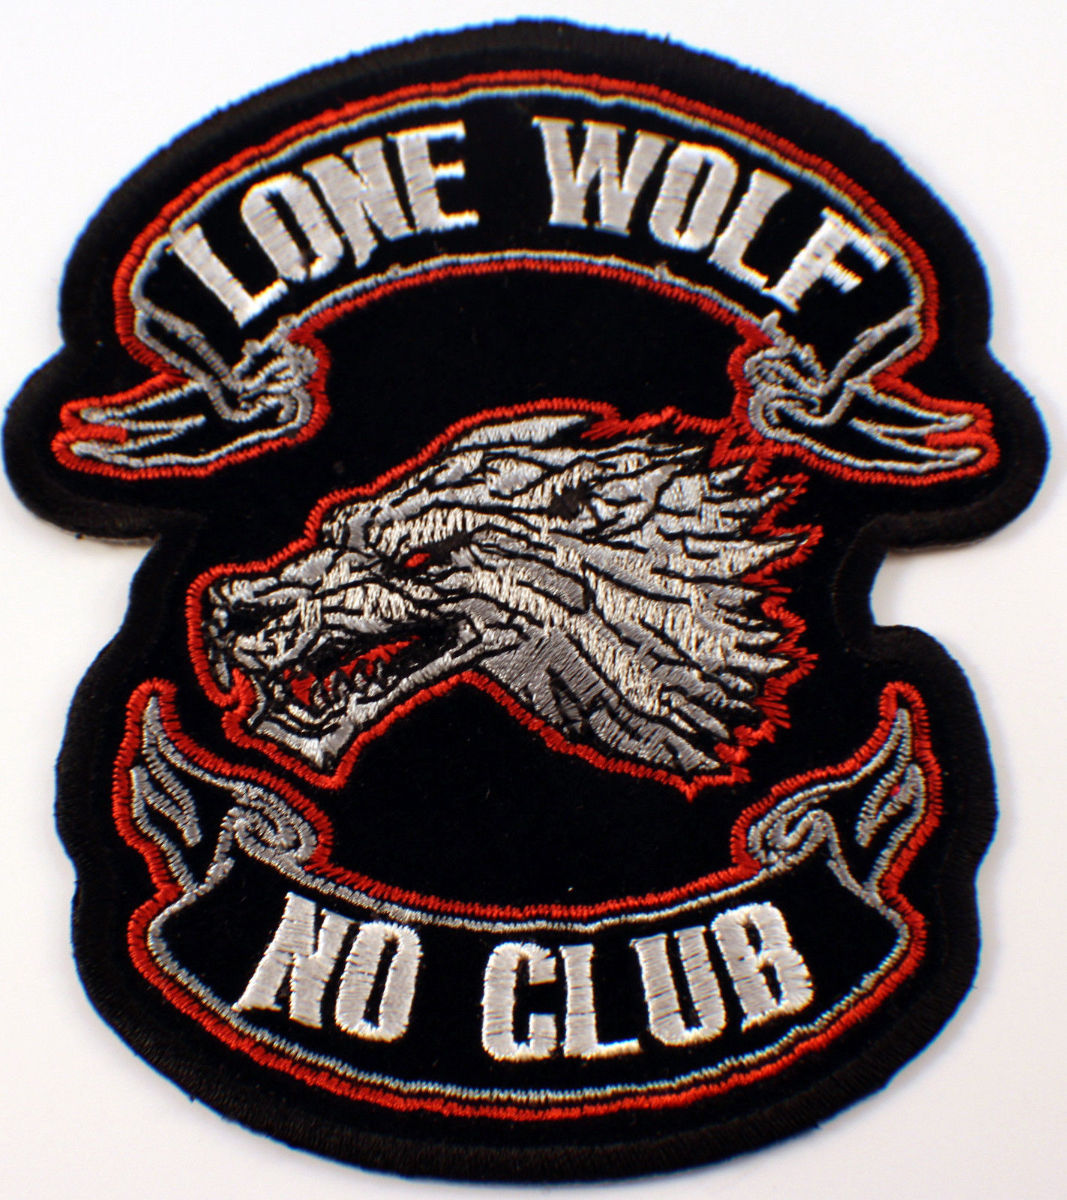 Lone Wolf No Club Bike 6 X 7 Motorcycle Uniform Patch Biker